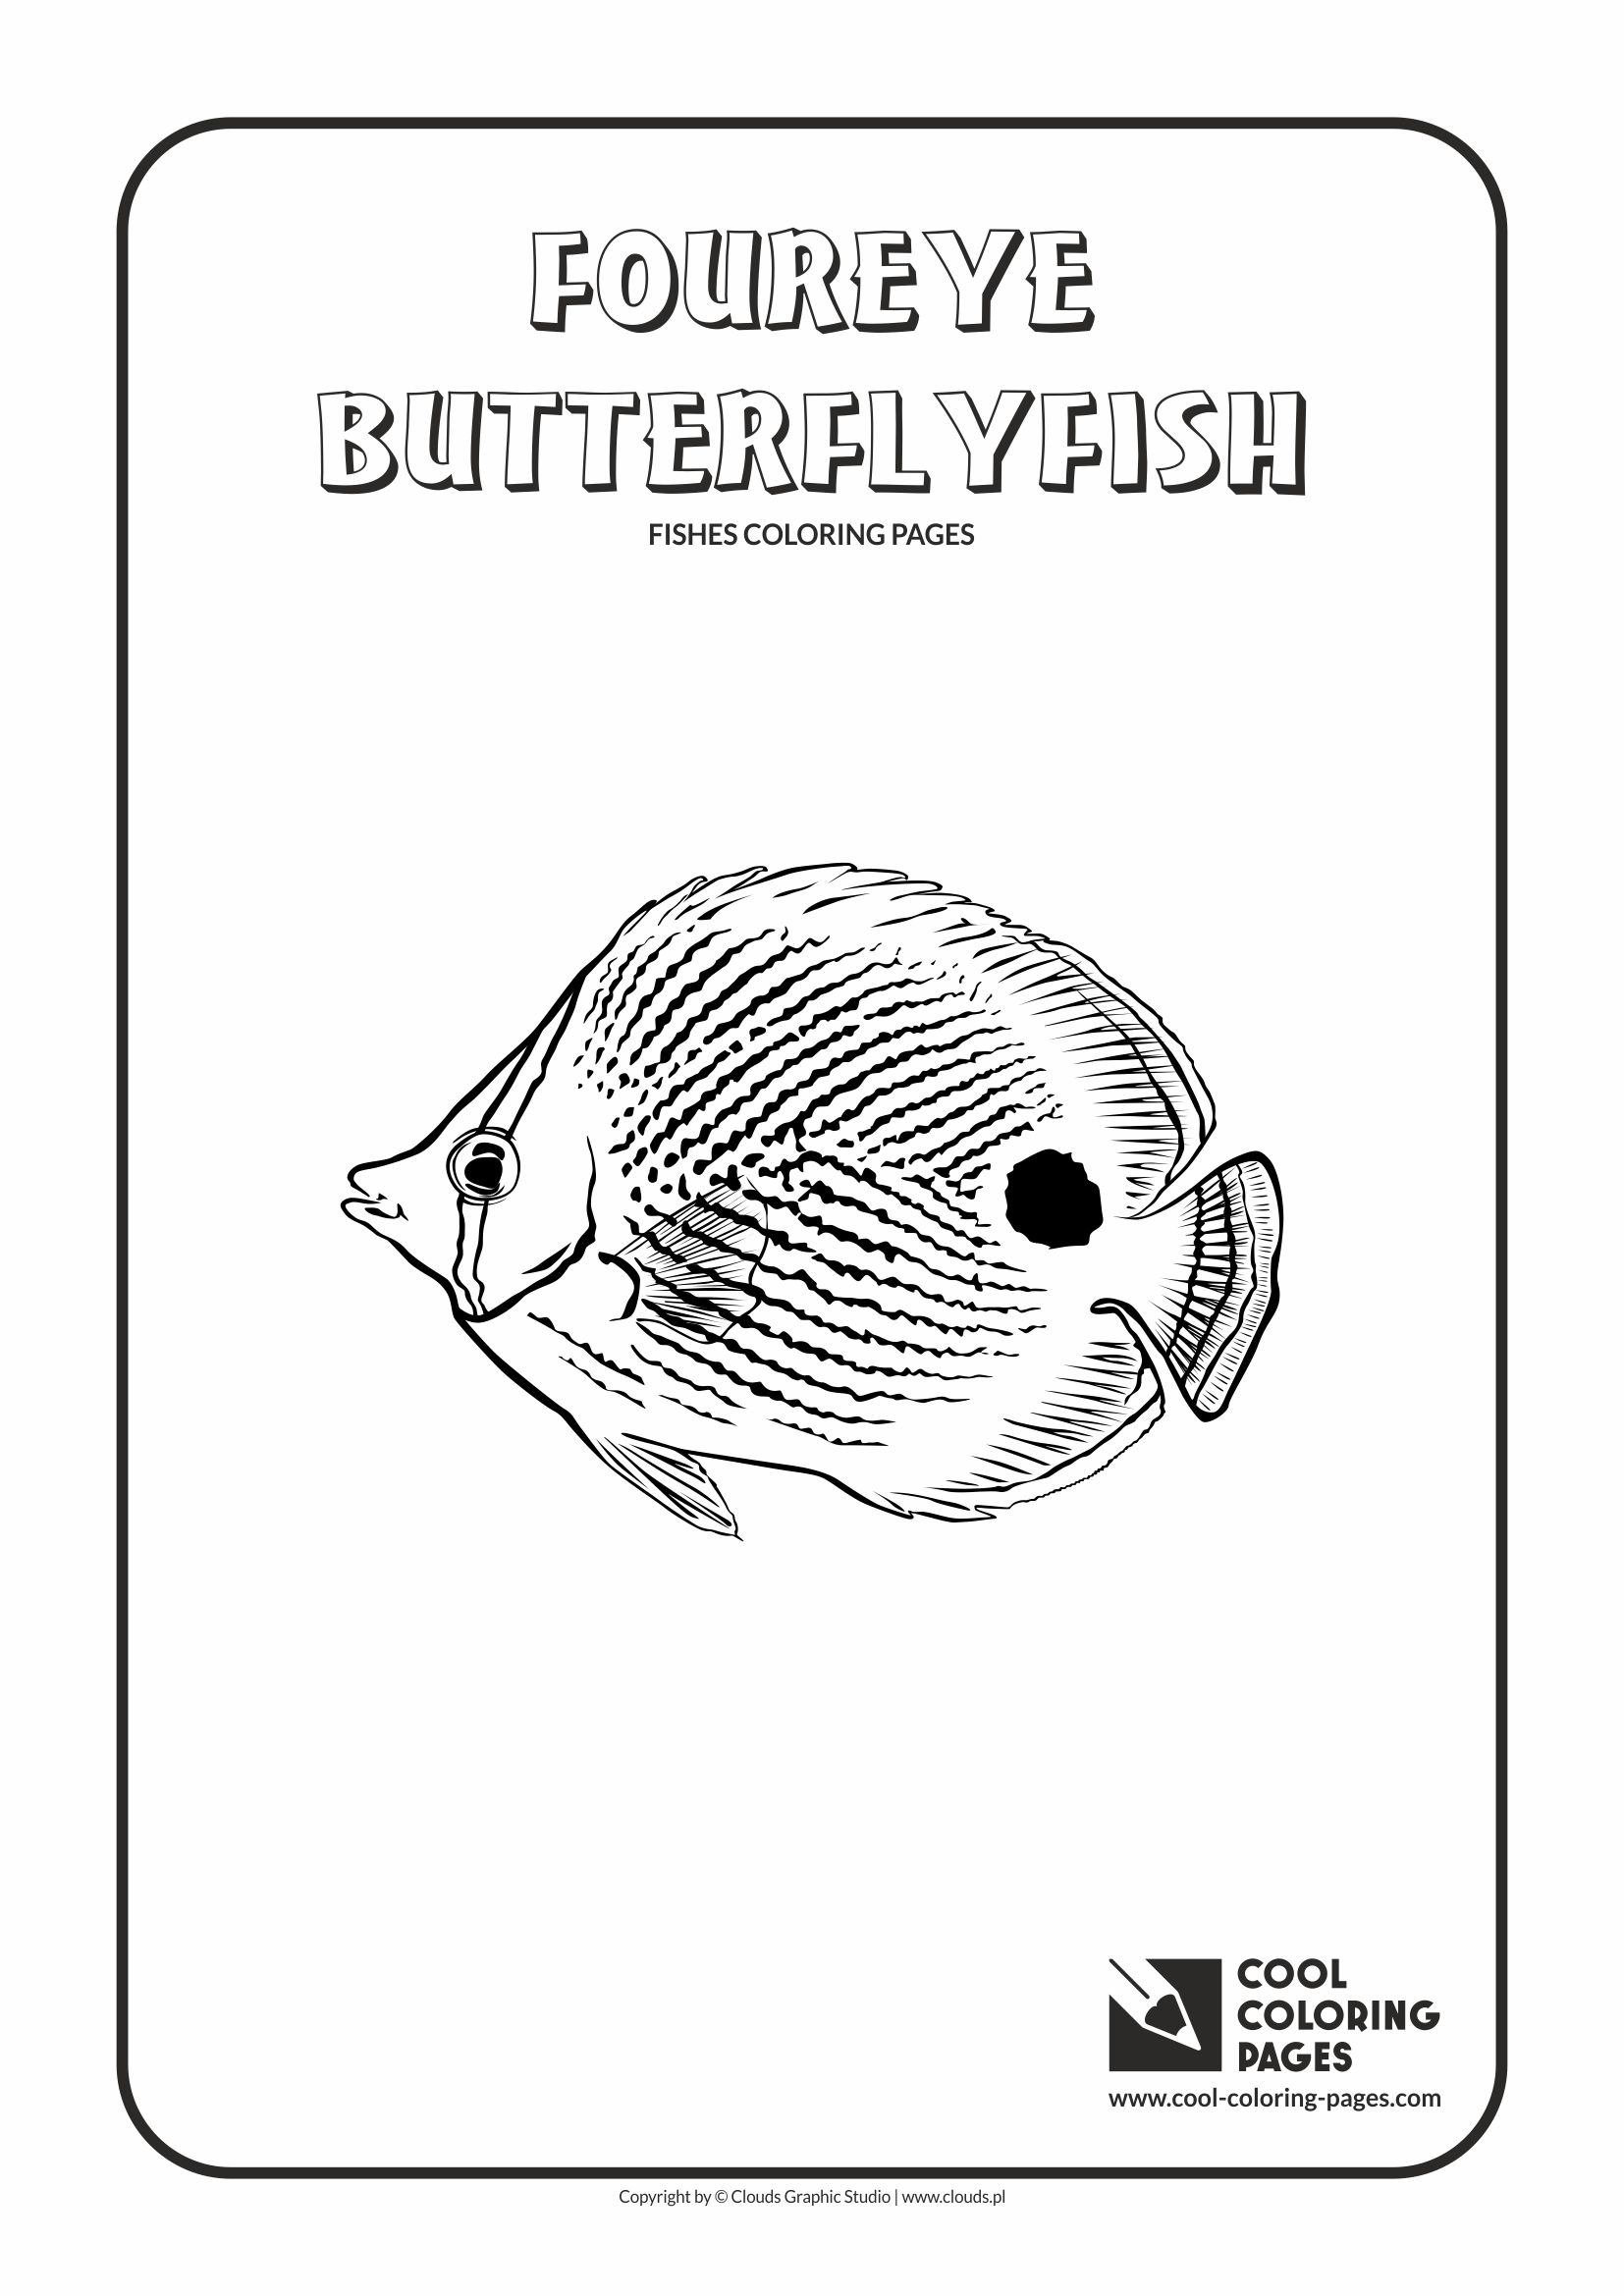 Cool Coloring Pages - Animals / Foureye butterflyfish / Coloring page with foureye butterflyfish